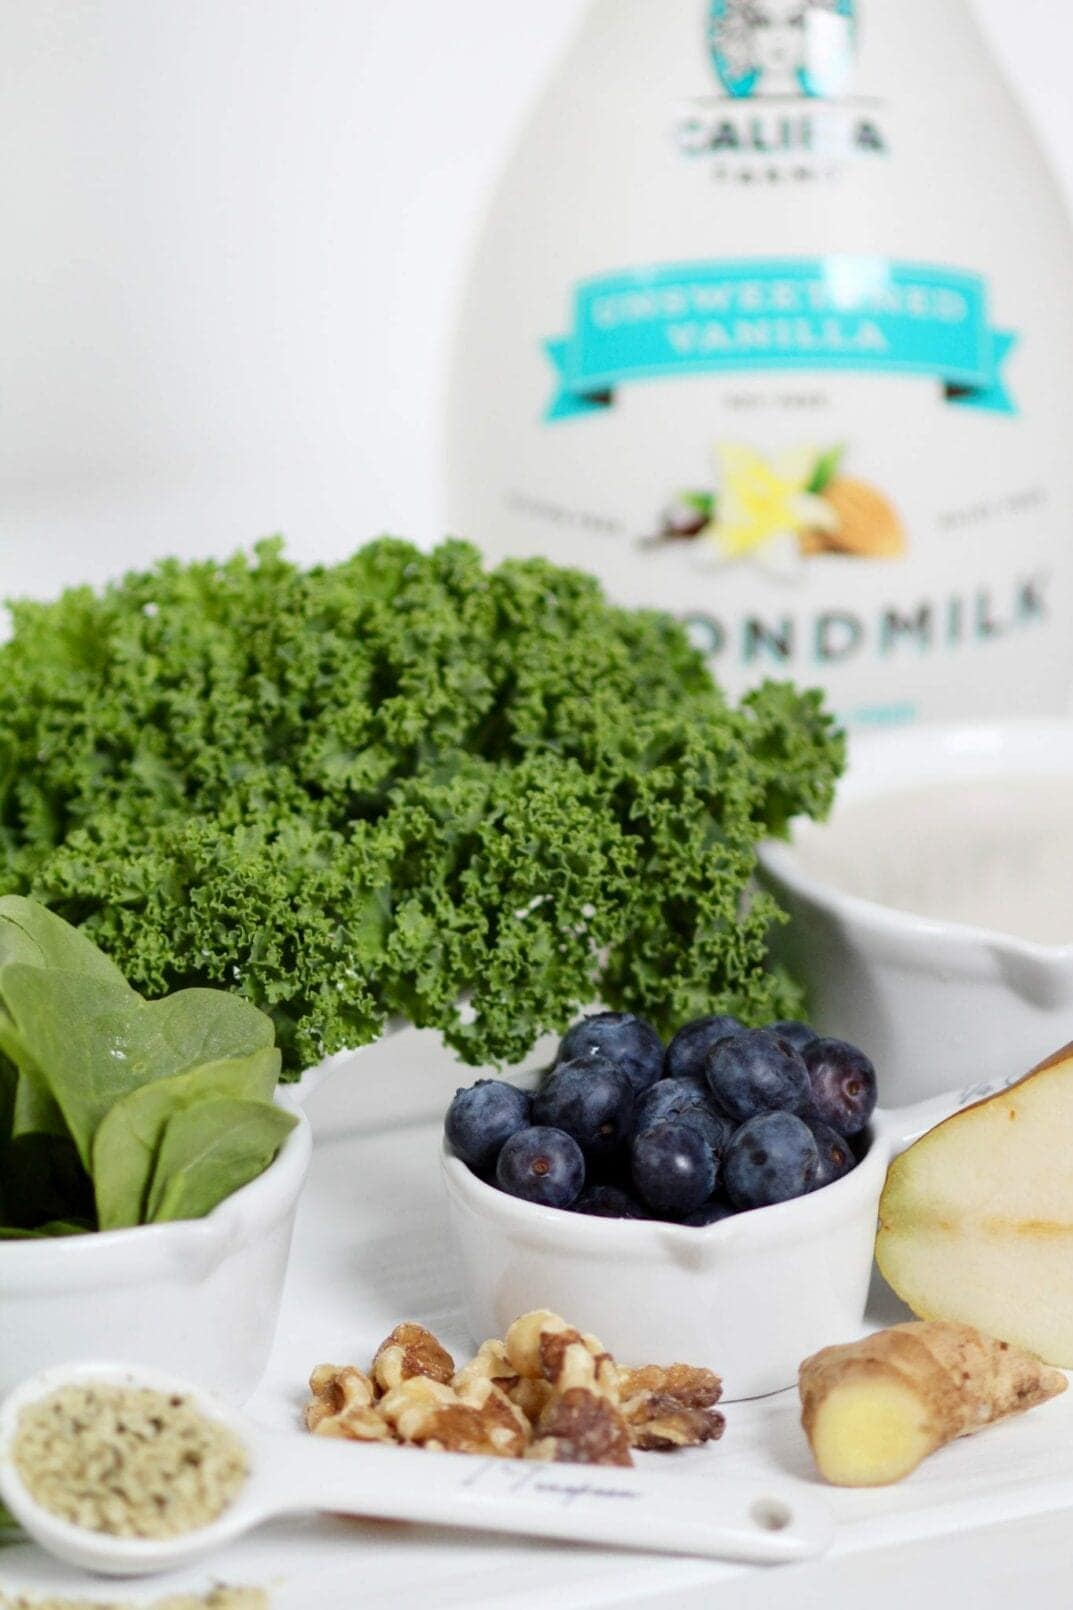 blueberry + hemp green smoothie ingredients